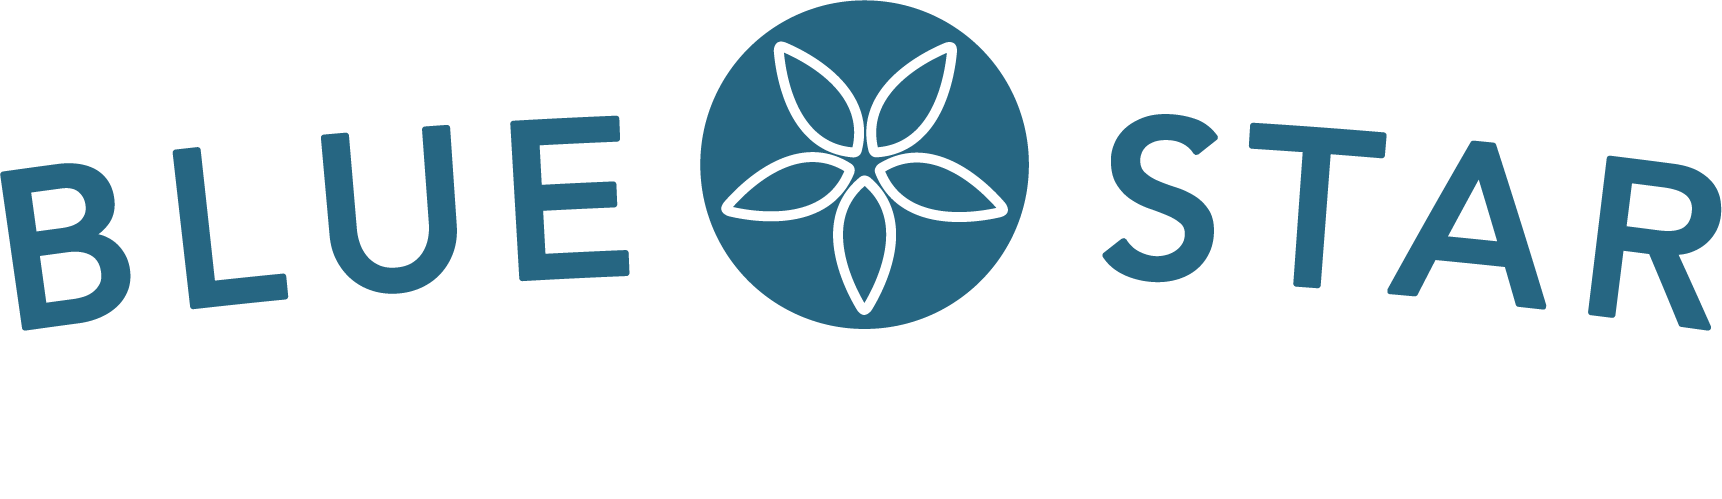 Blue Star Naturopathic Clinic in Central Oregon